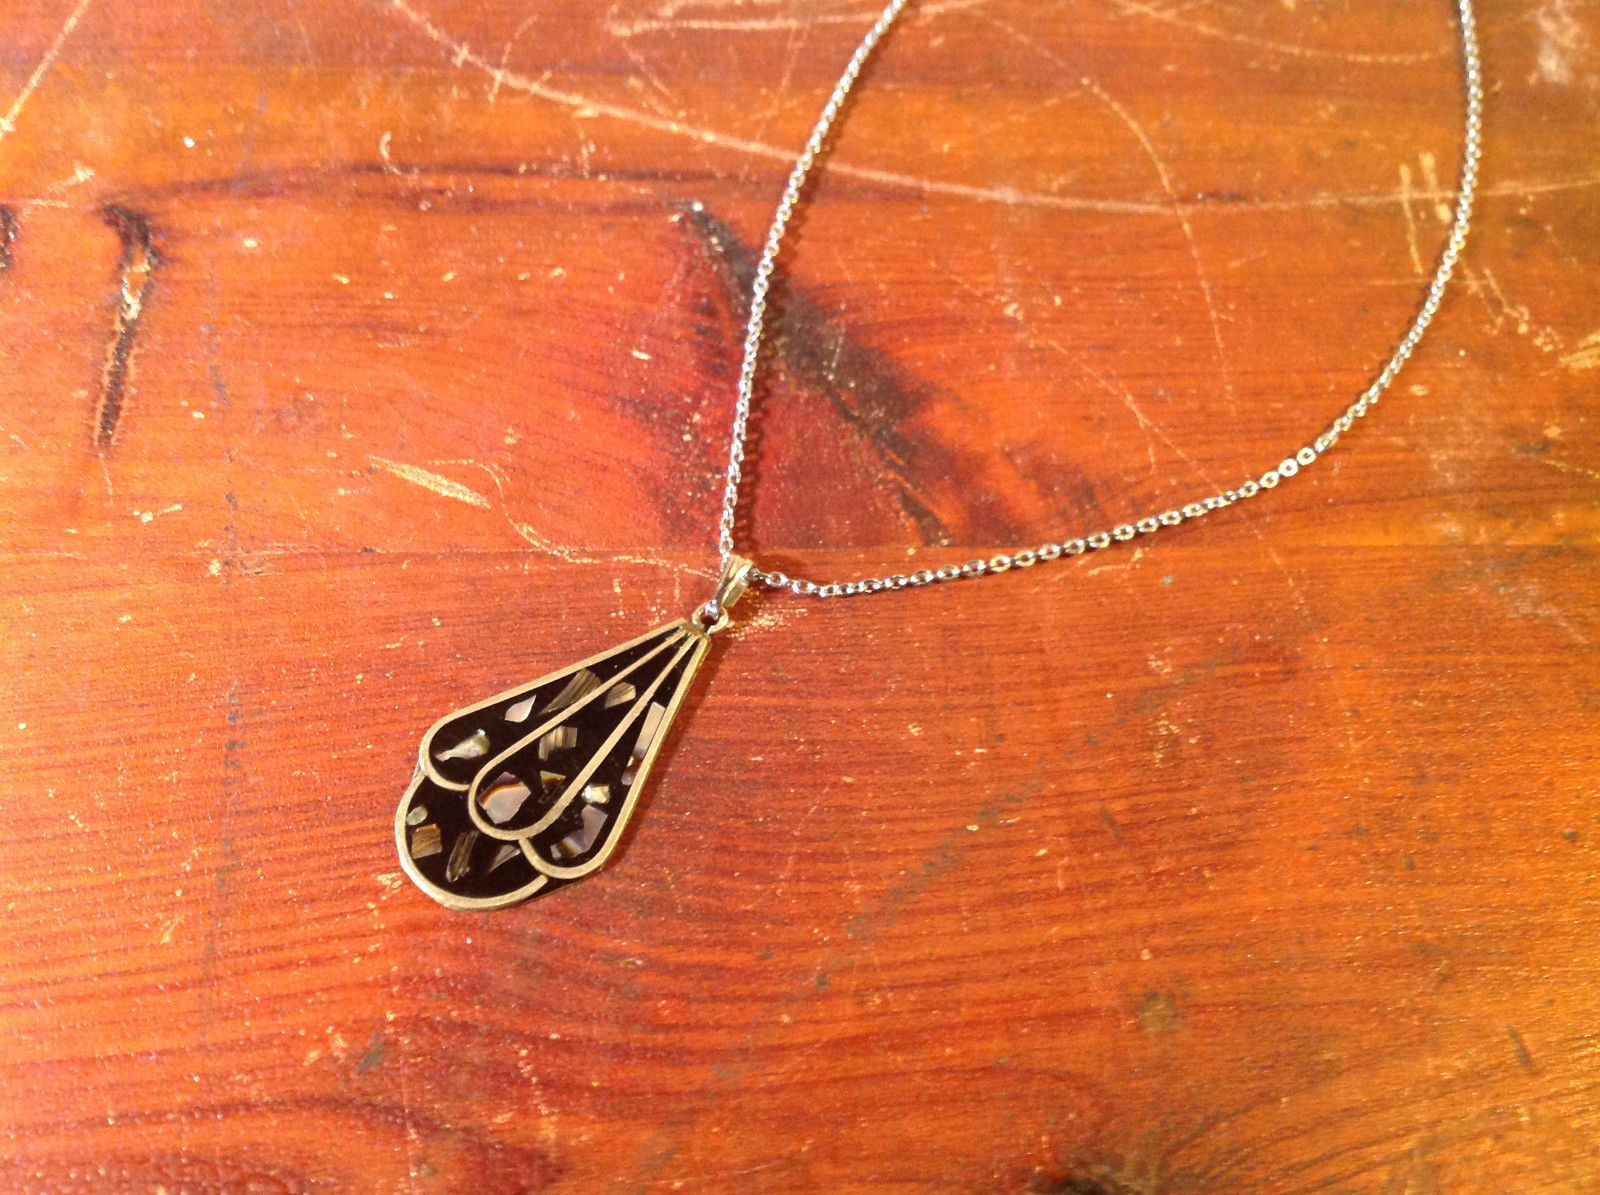 Teardrop Shaped Flat Necklace Bits of Stone Silver Tone Black Chain